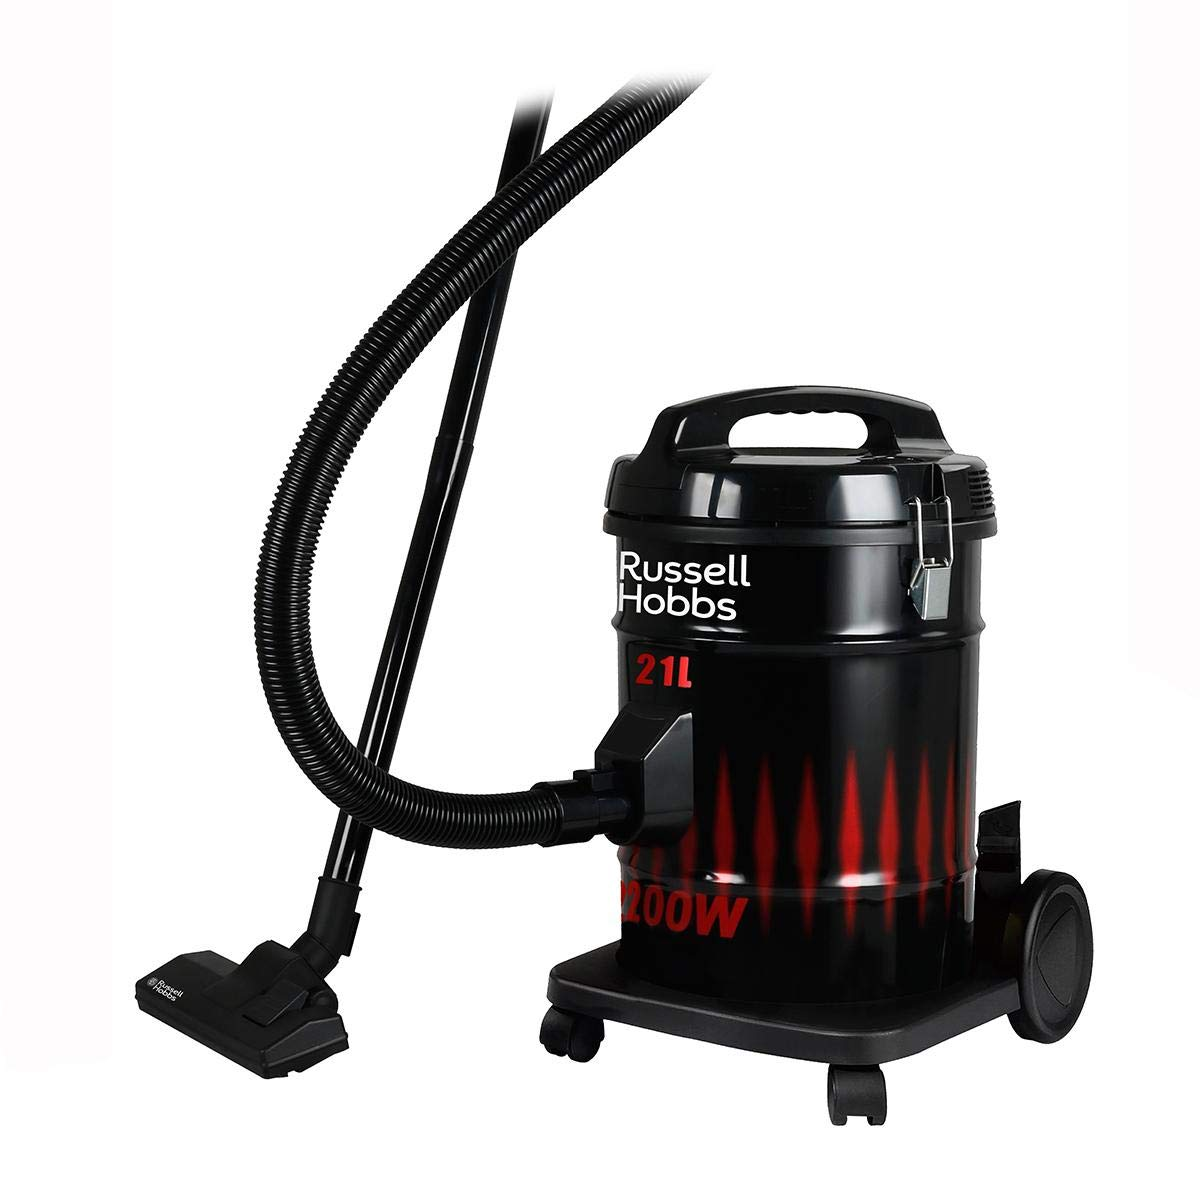 Russell Hobbs K-403-2 2X Heavy Duty Vacuum Cleaner